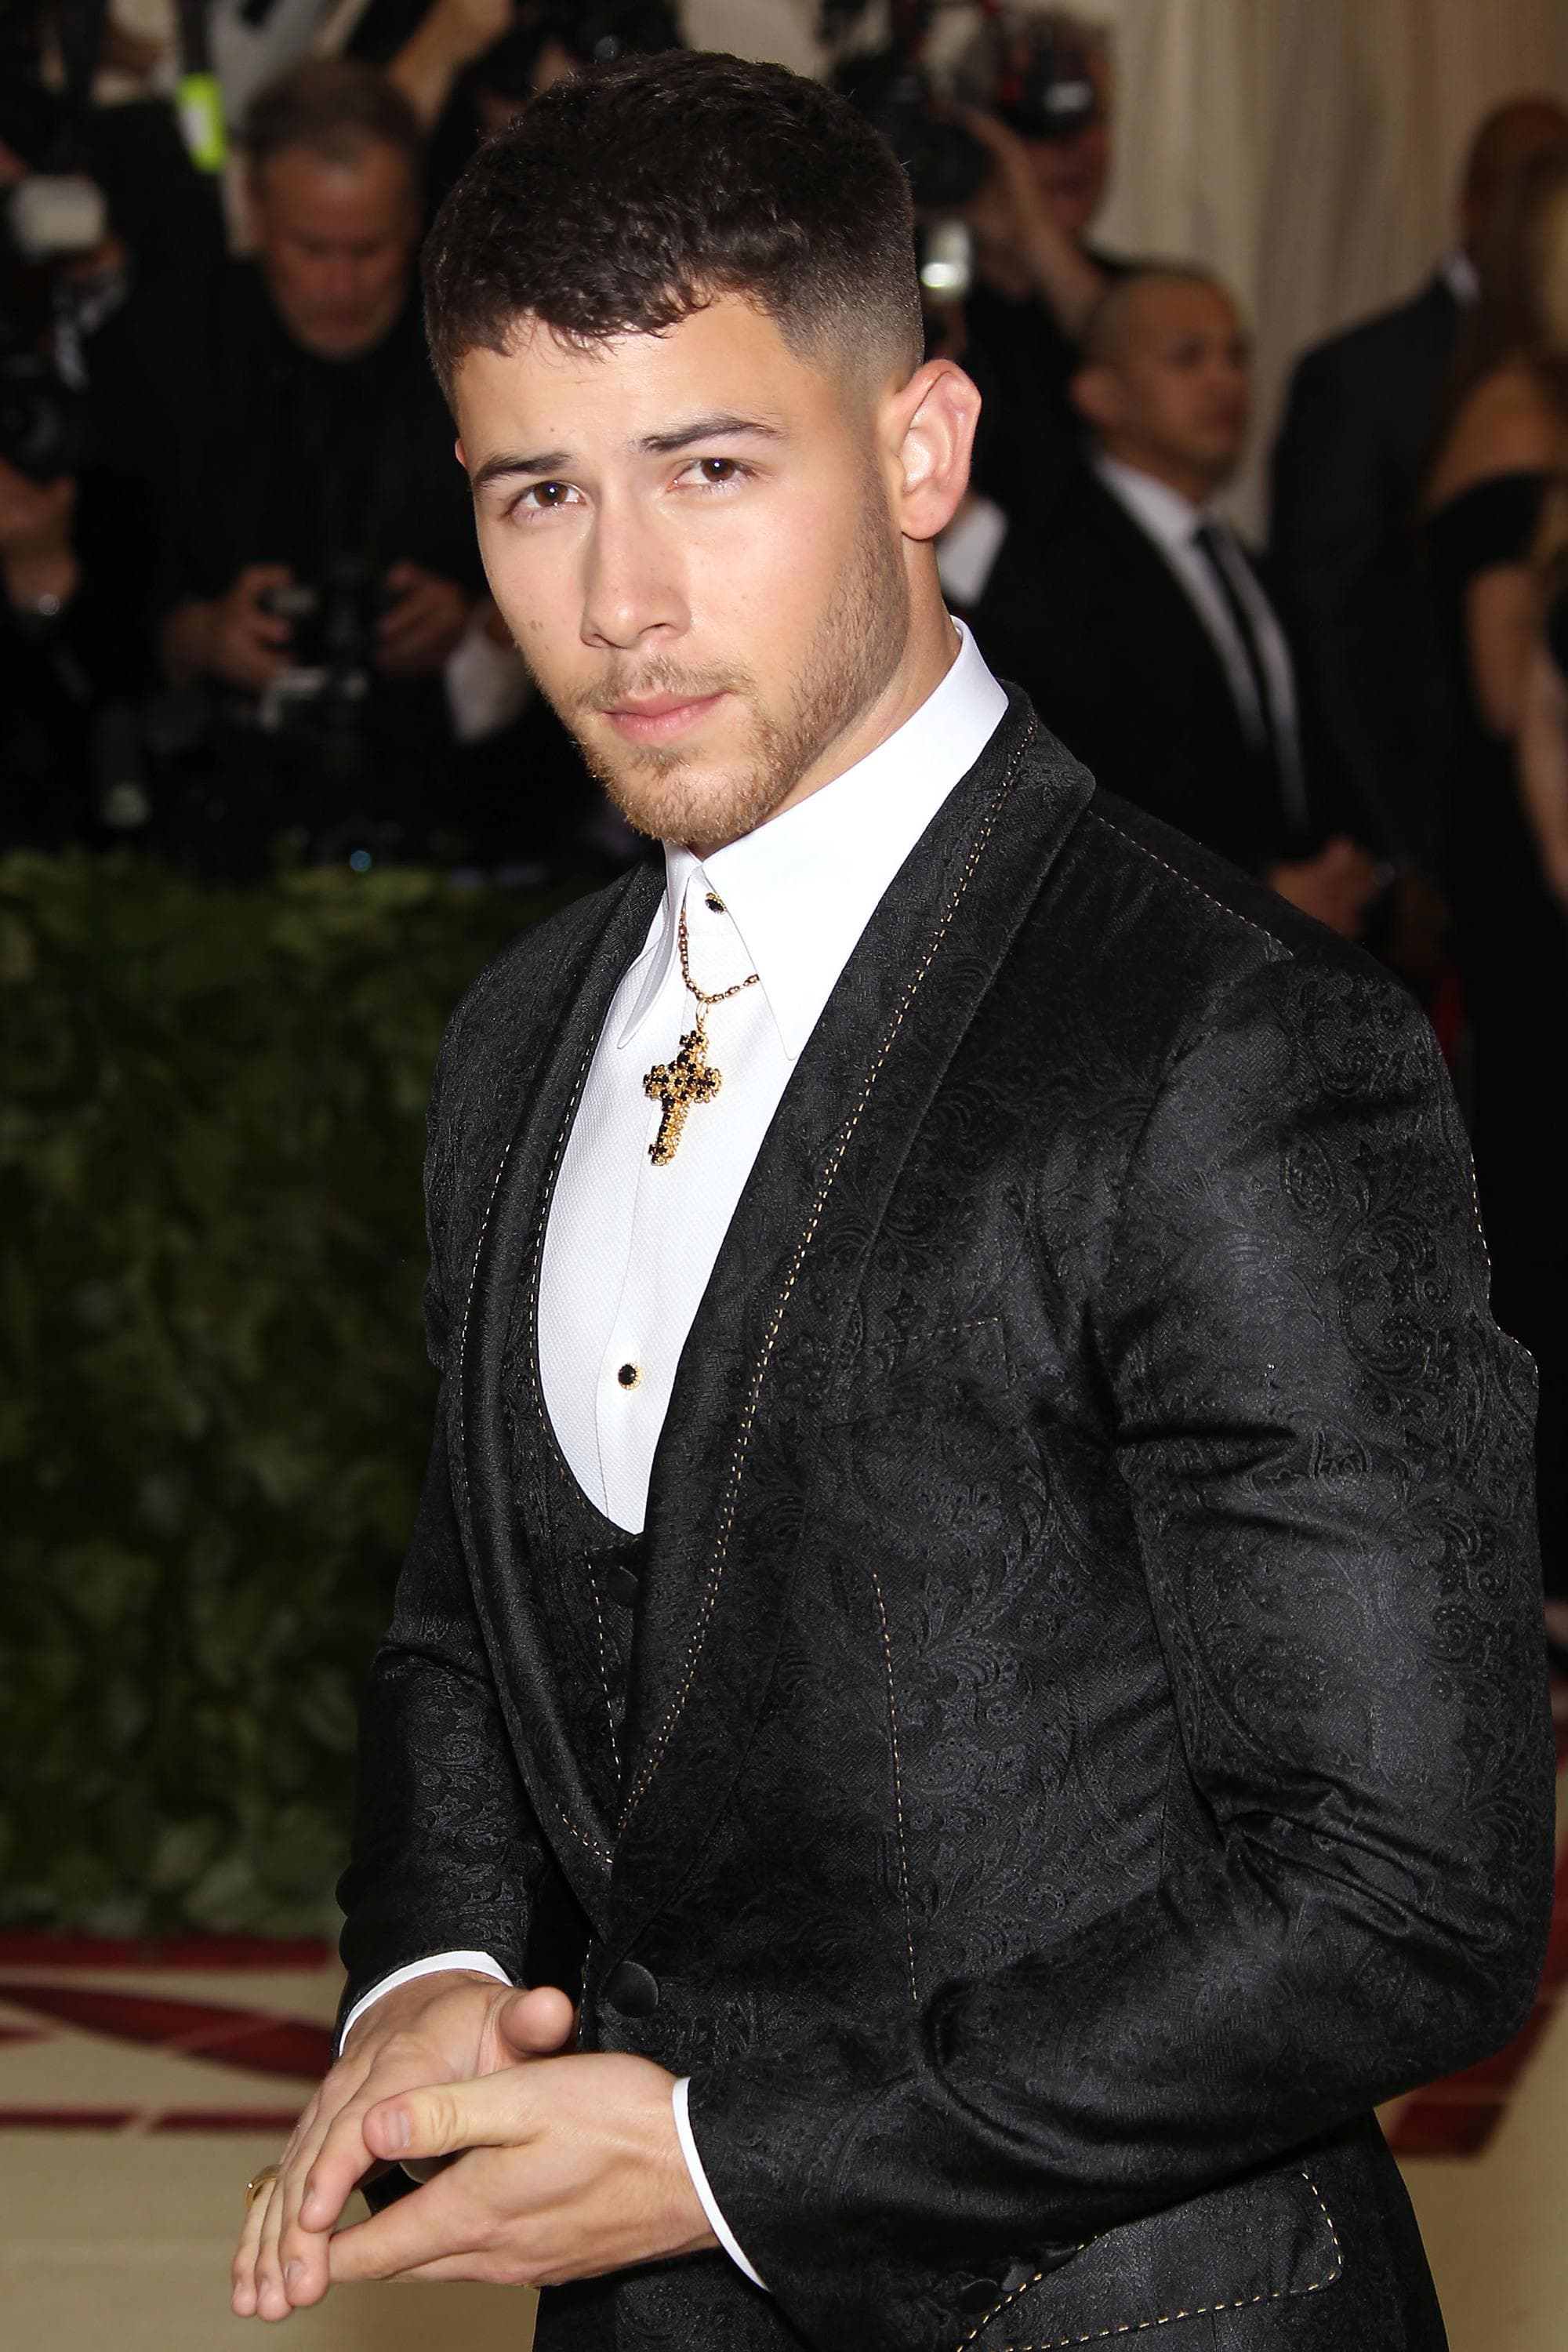 French crop Nick-jonas.